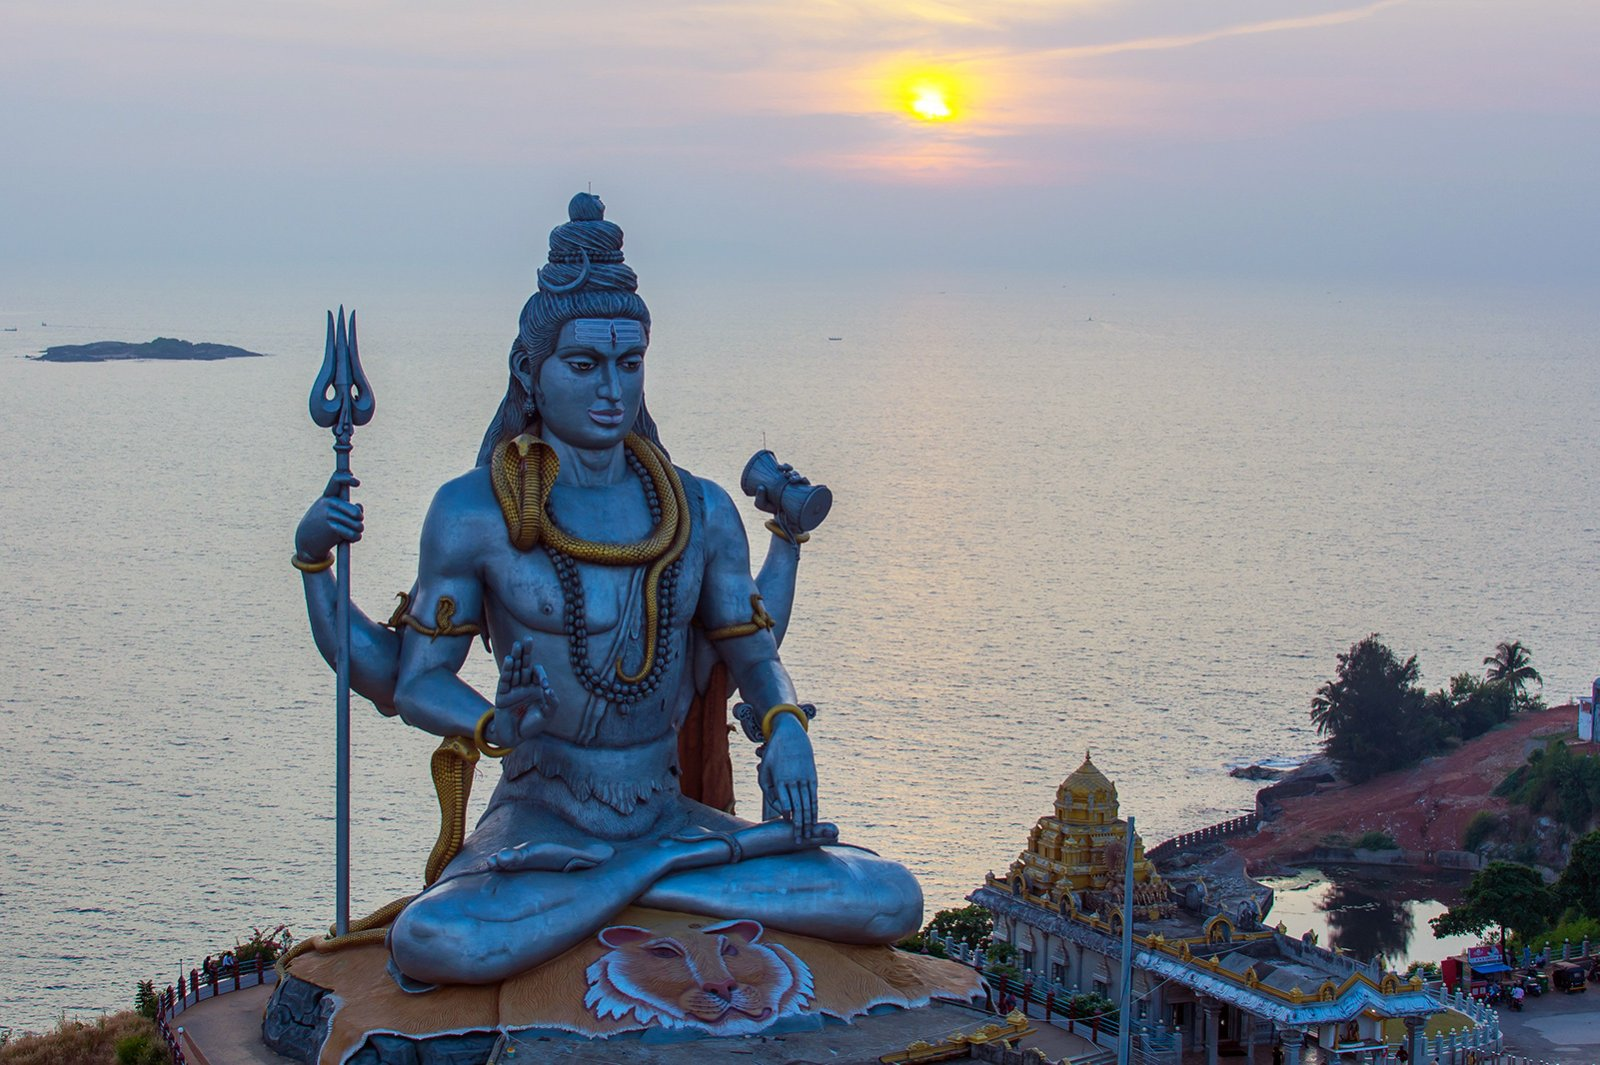 Lord Shiva Statue am Meer